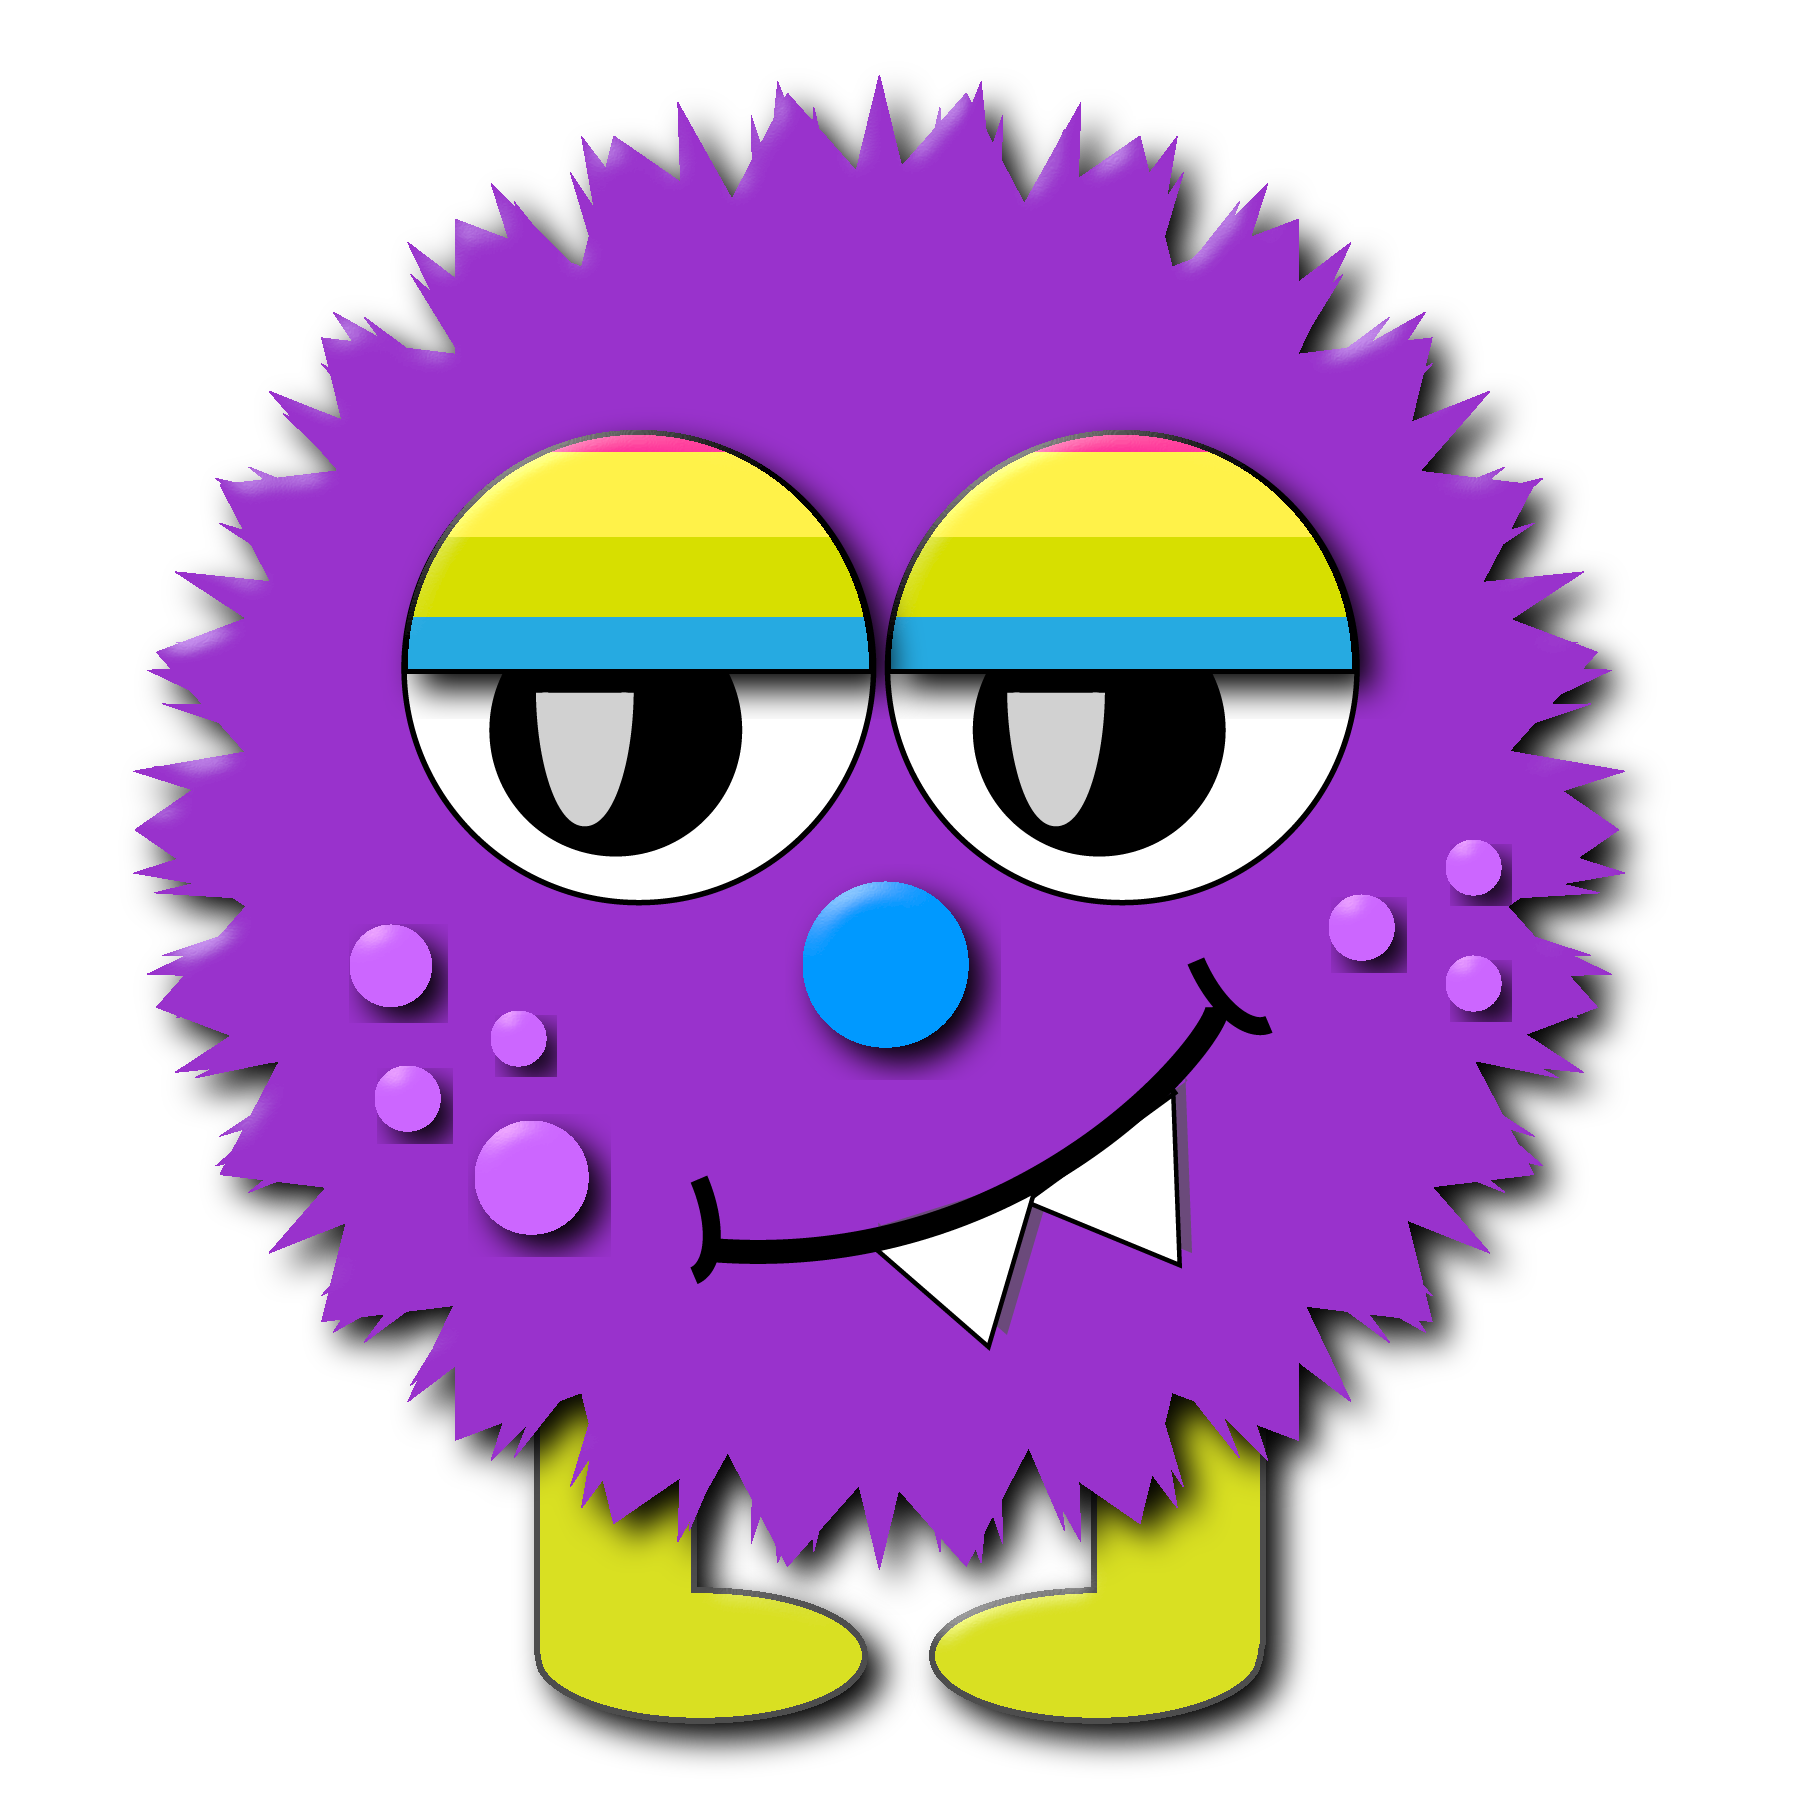 Monster clip art cartoon free clipart images 6.